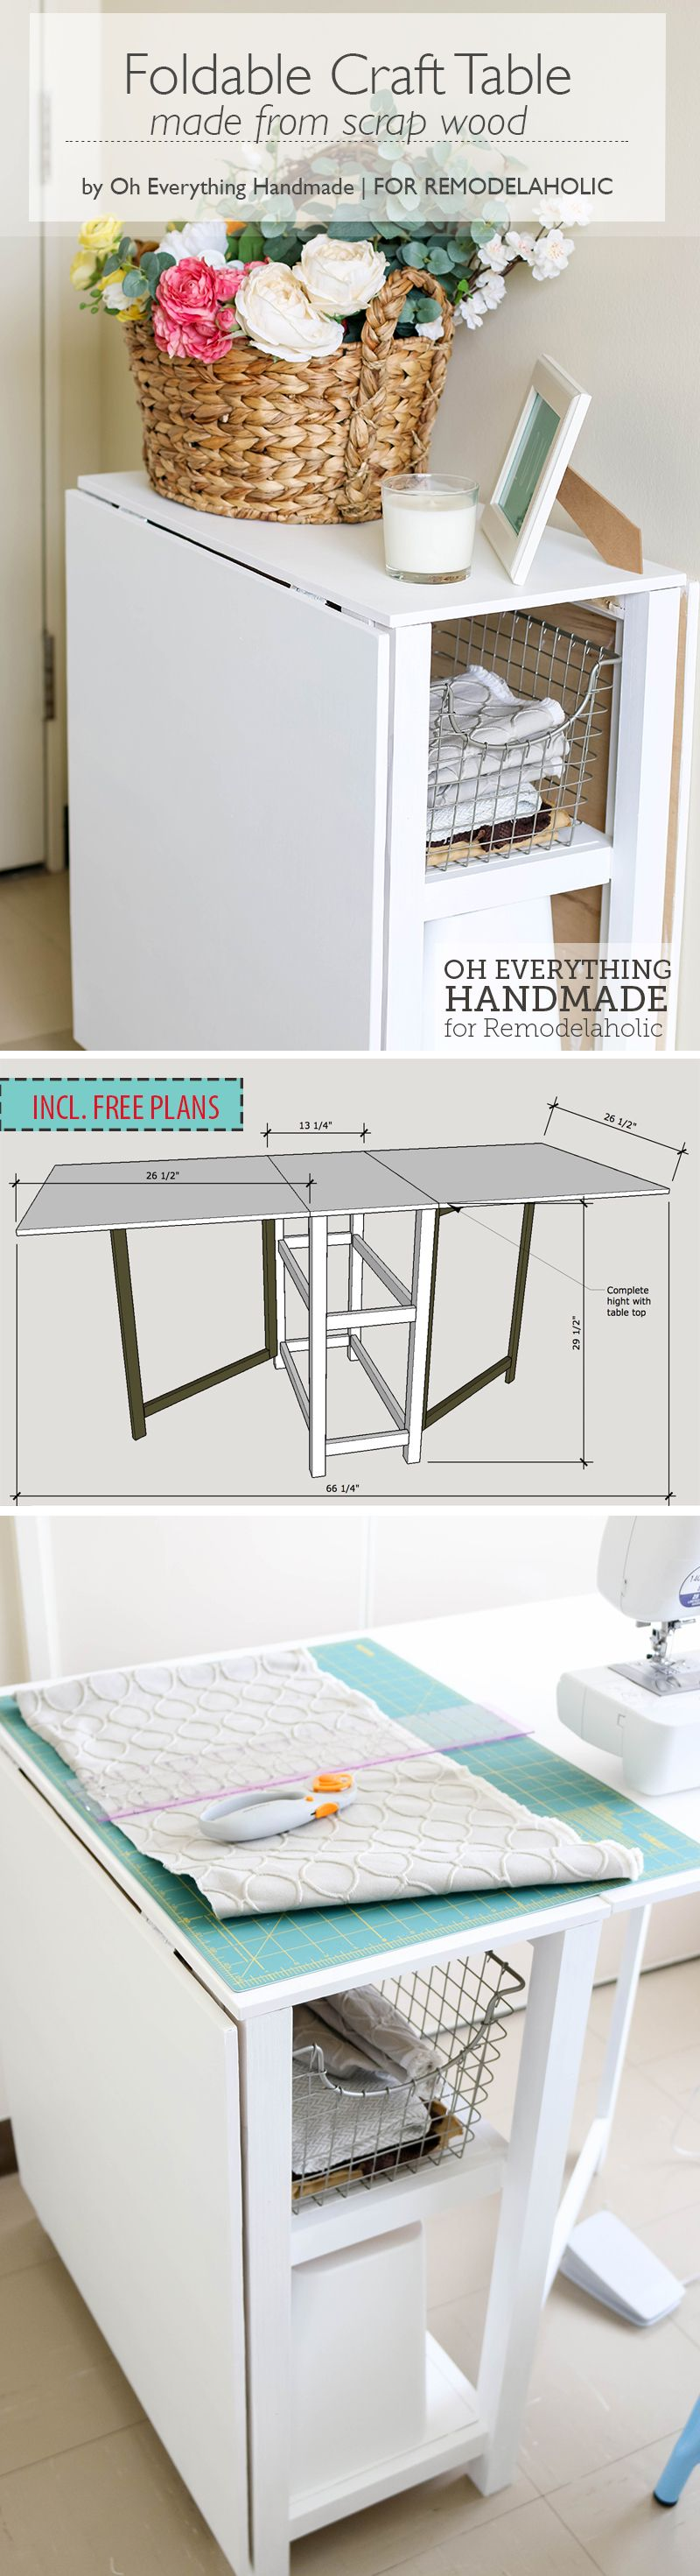 Make Your Small Craft Area Work With This Space Conscious Diy